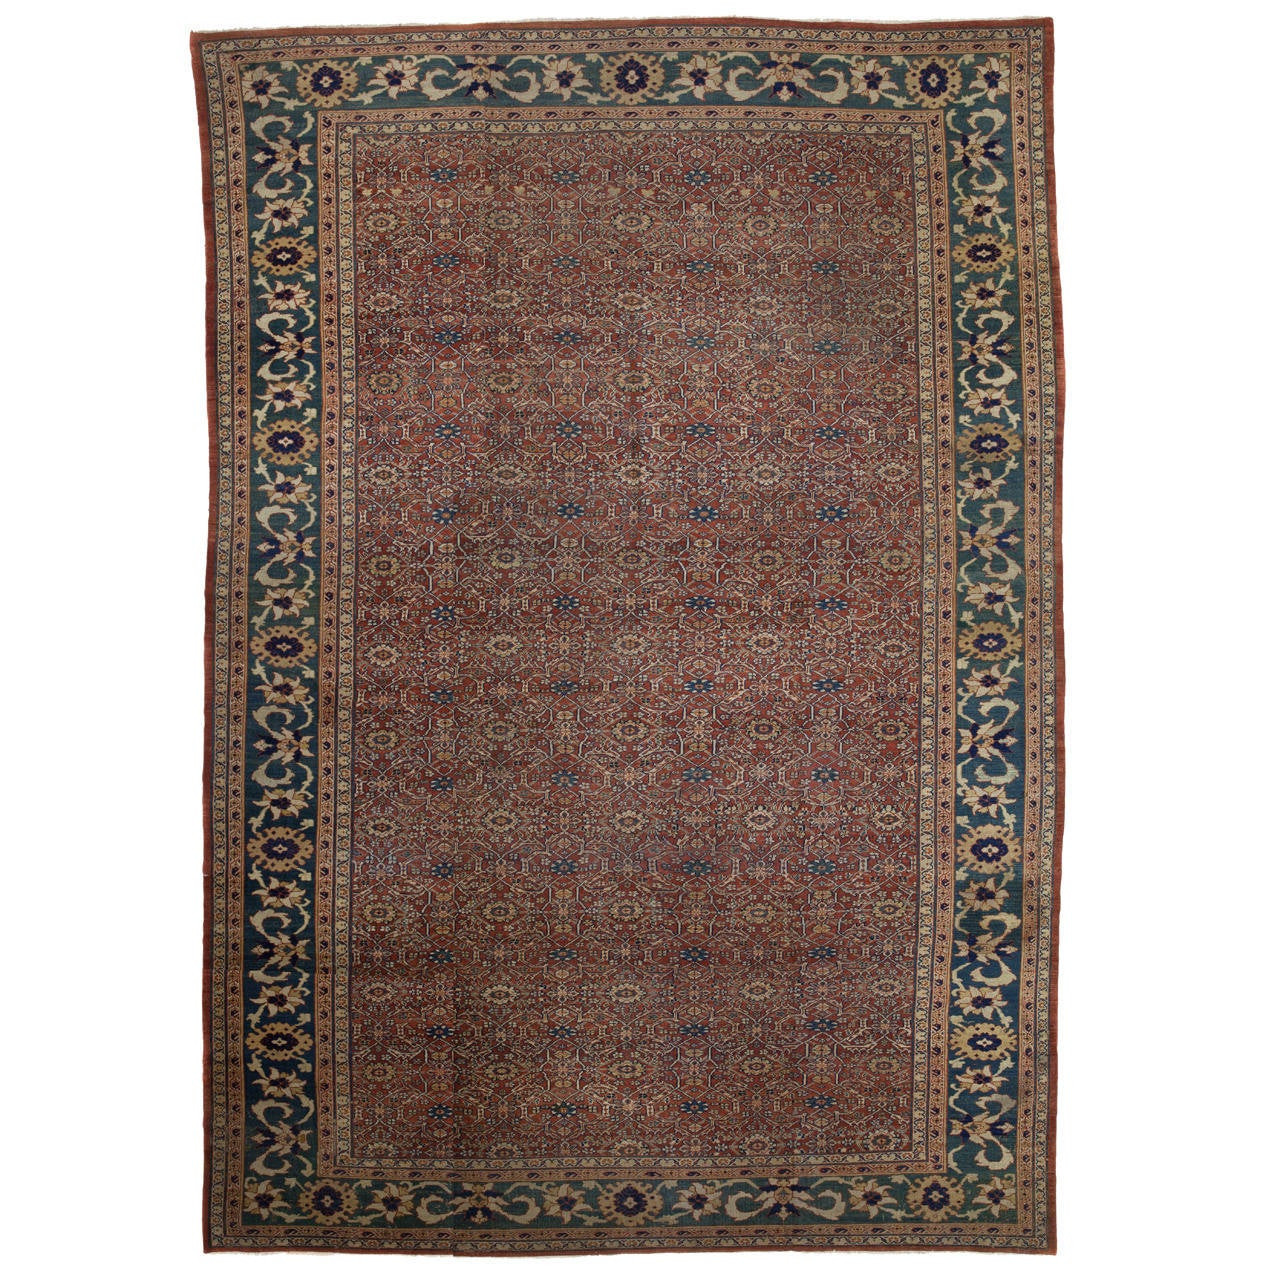 Antique Cotton Agra Rug With Abrash Circa 1900 For Sale: NW Persian Mahal Rug, Circa 1900 At 1stdibs